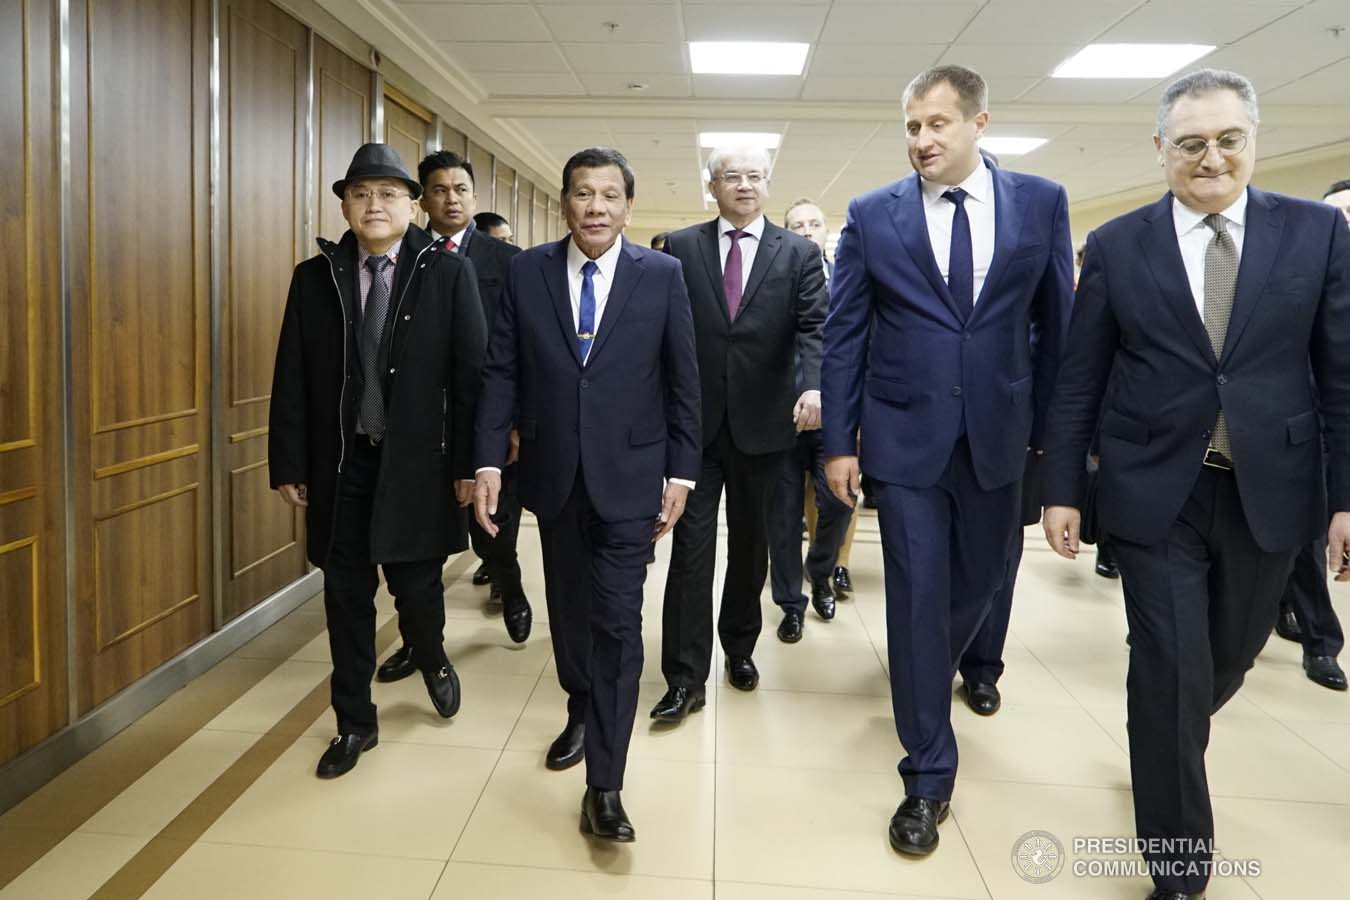 President Rodrigo Roa Duterte is accompanied by Moscow State Institute of International Relations (MGIMO) University Vice Rector Artem Malgin prior to the conferment of the honorary doctorate degree at the MGIMO University in Moscow, Russian Federation on October 05, 2019. KING RODRIGUEZ/PRESIDENTIAL PHOTO